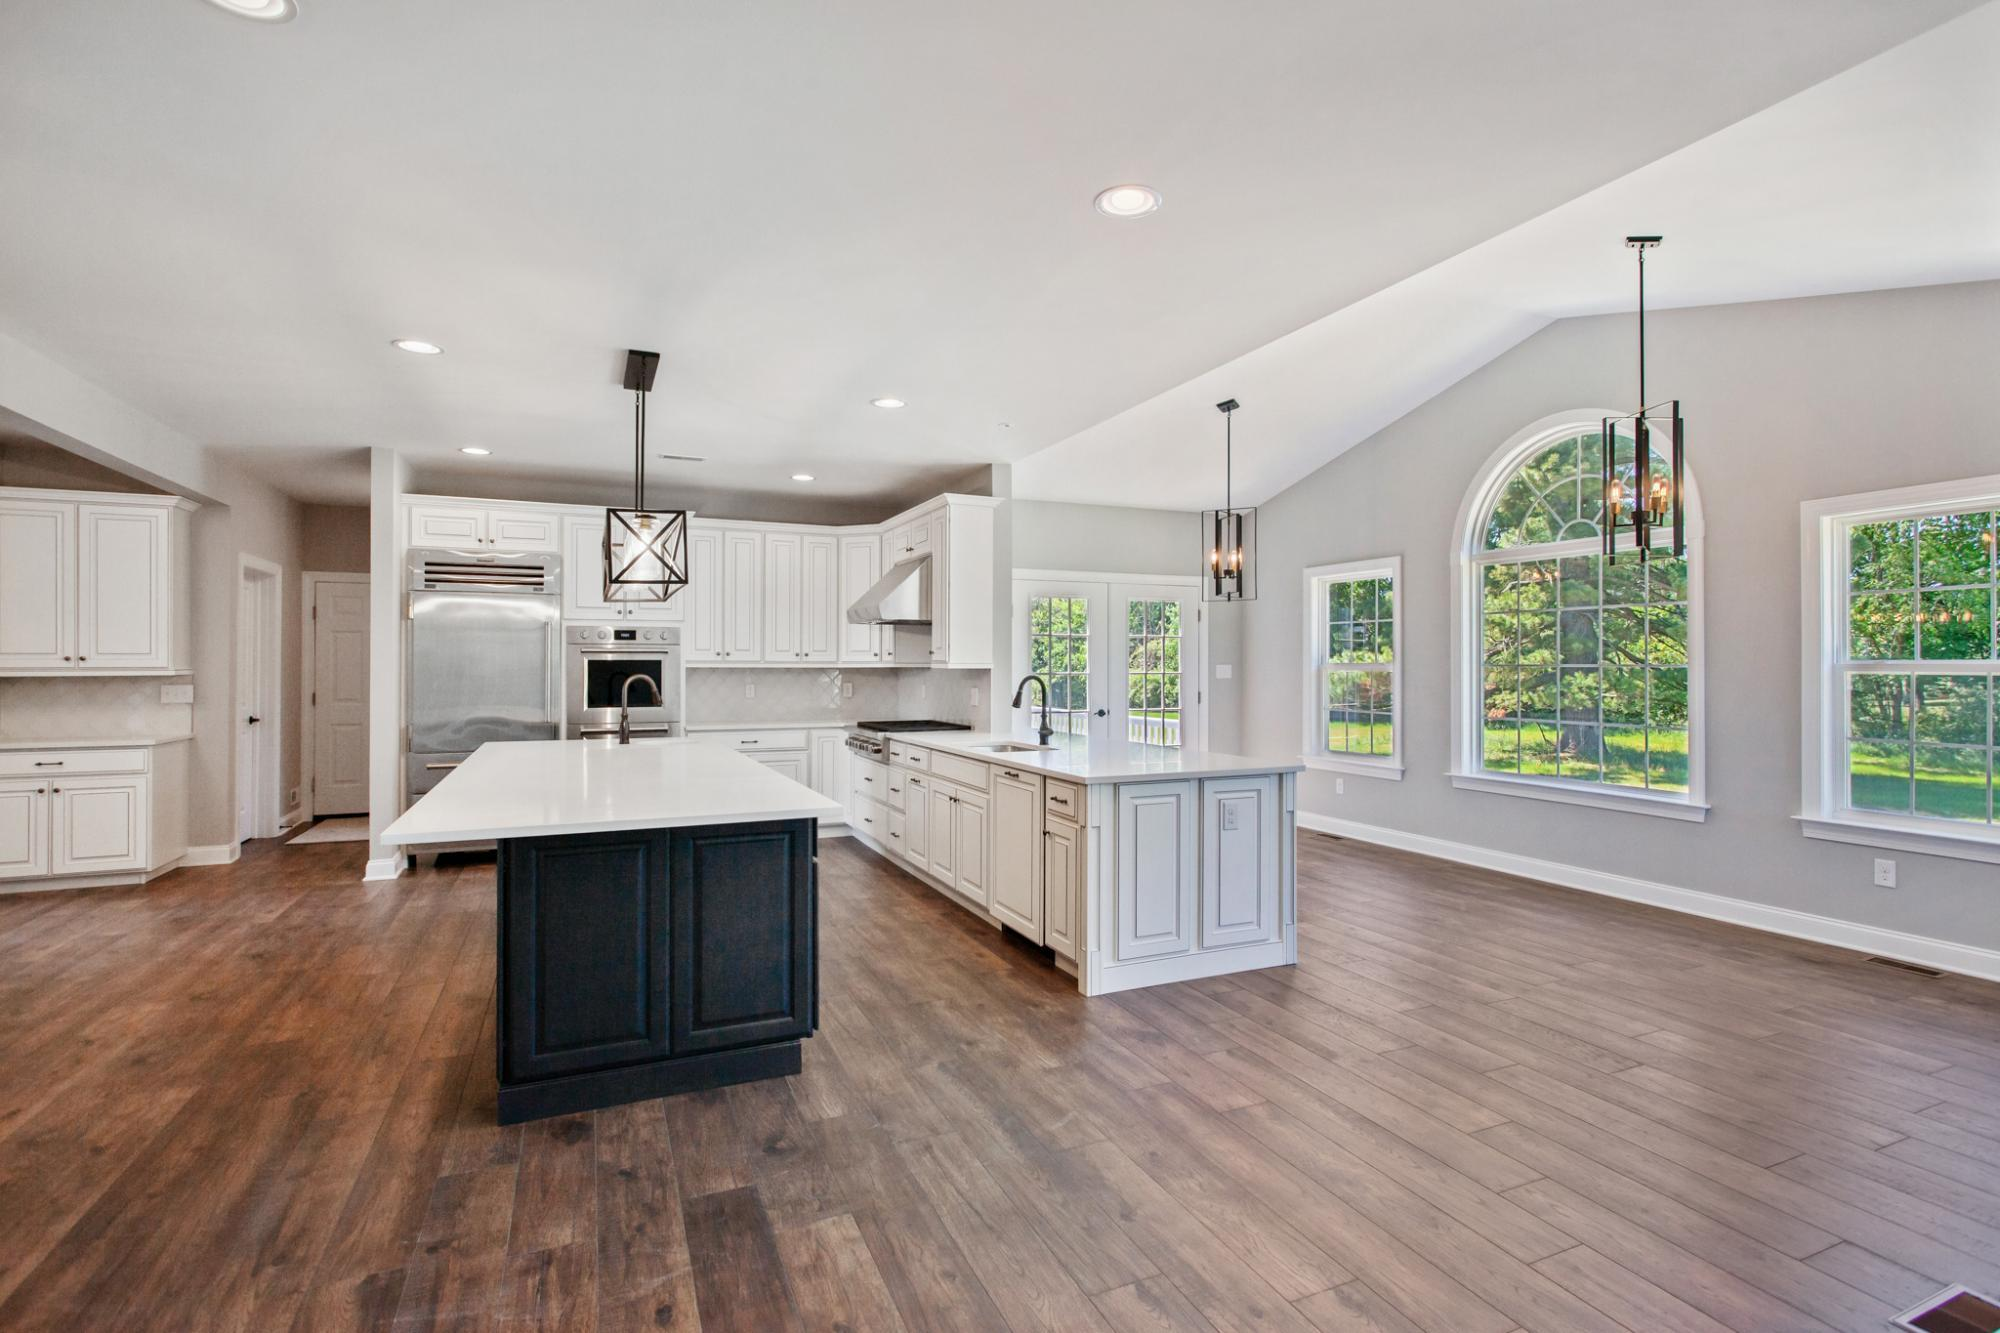 Kitchen featured in The Greenbrier By Hallmark Homes Group in Philadelphia, PA